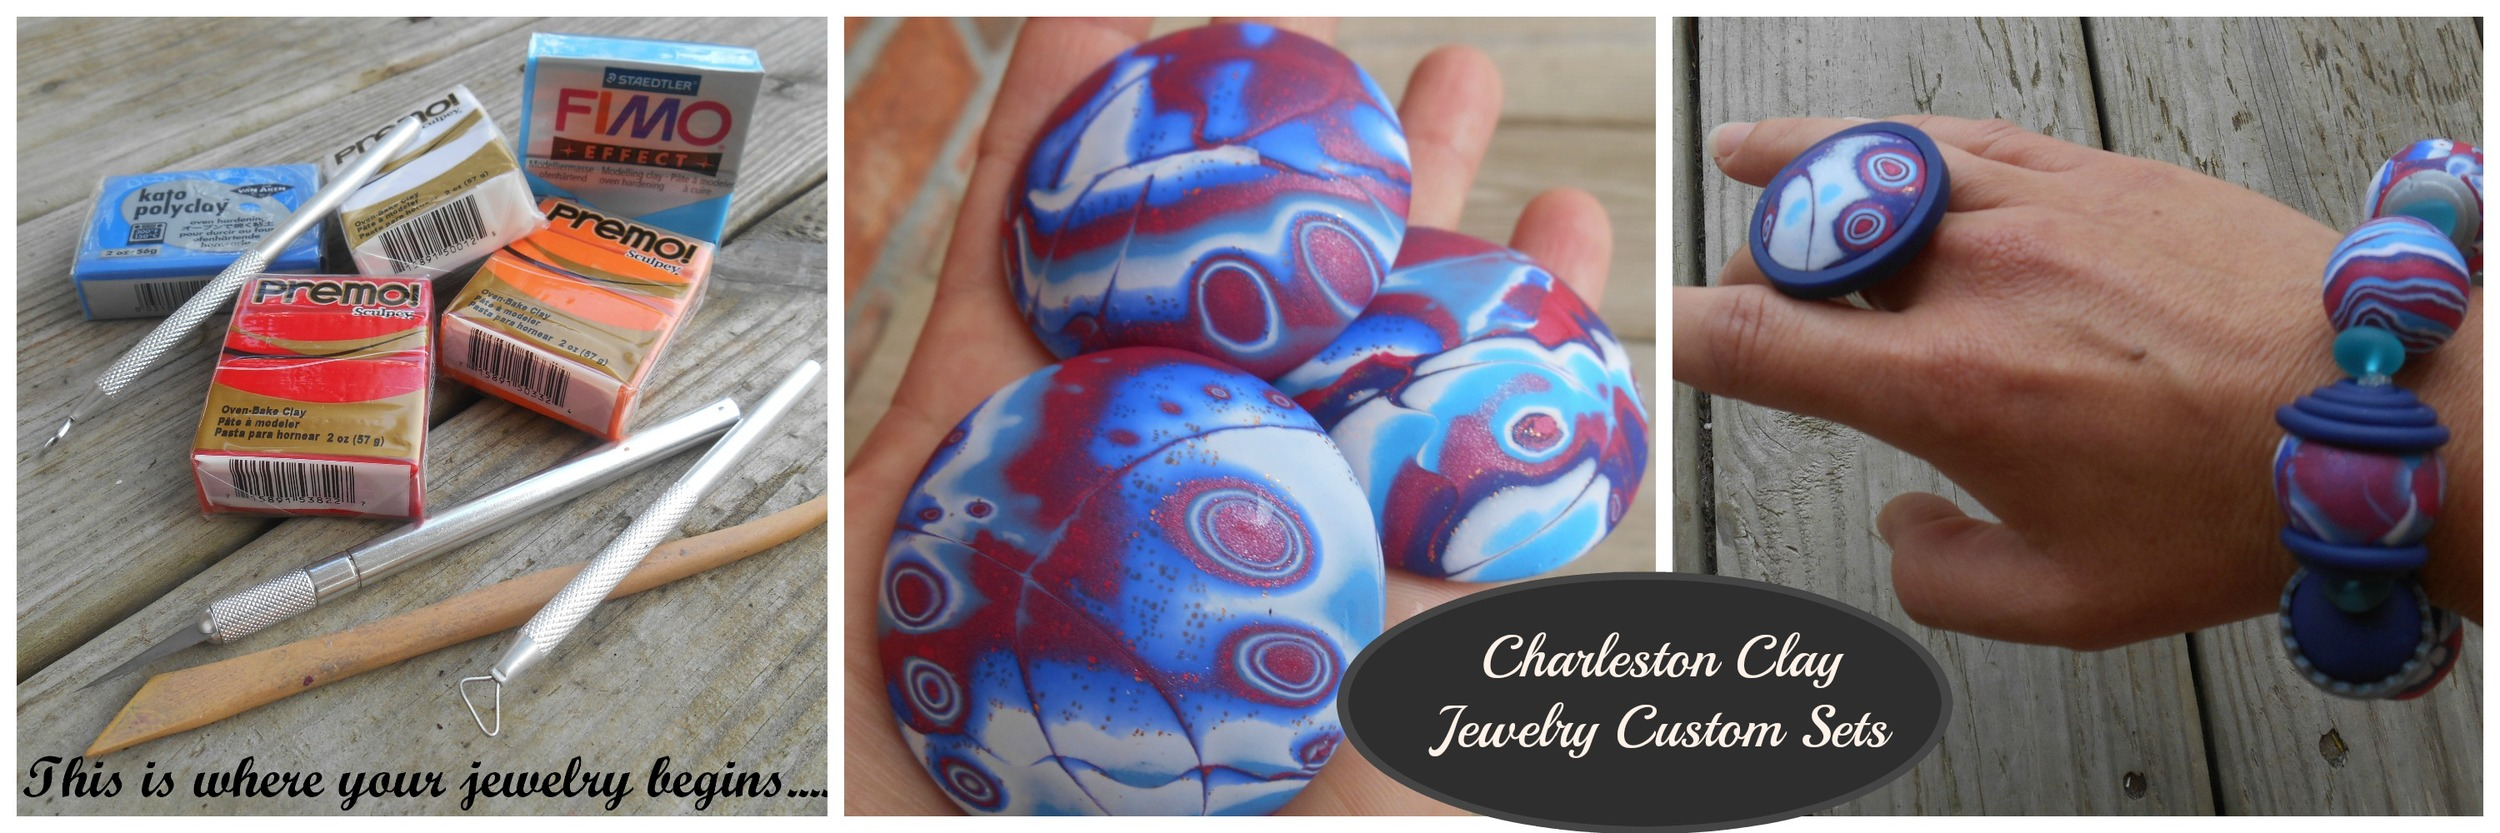 The journey begins with beautiful and colorful blocks of polymer clay!